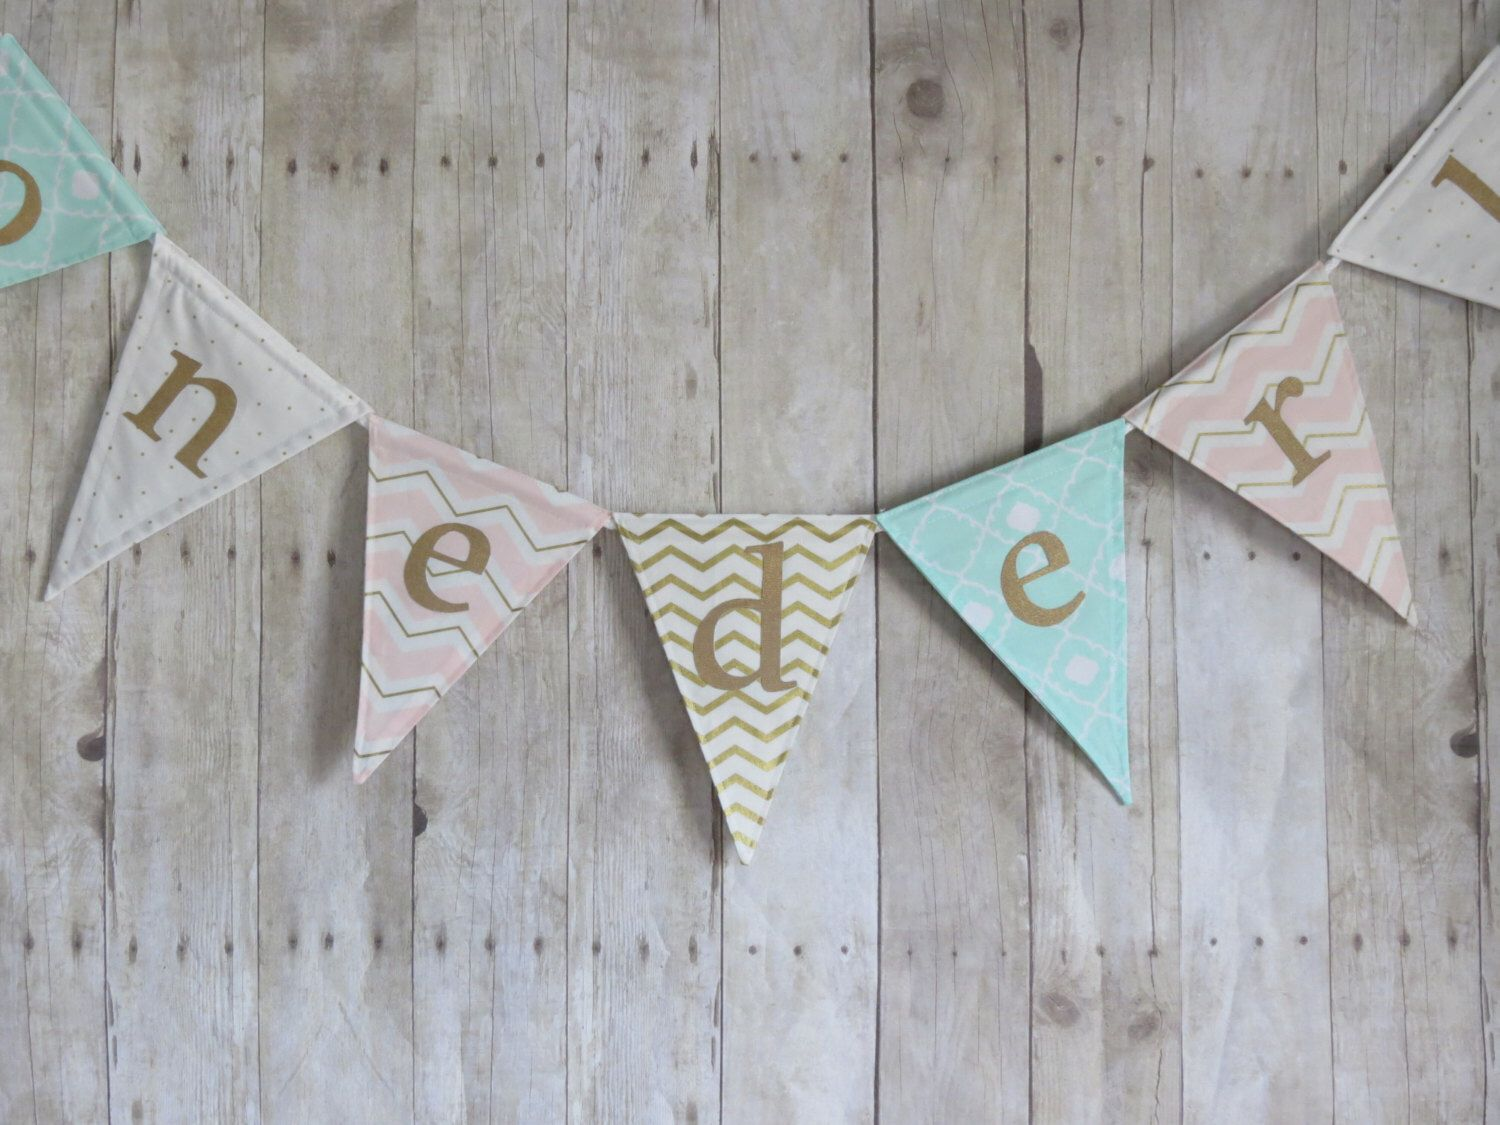 Custom flag banner. Mint, pink, and gold pennant banner. Personalize with a name or word, baby shower, nursery decor, birthday party decor by ThePartyOrchard on Etsy https://www.etsy.com/listing/245064189/custom-flag-banner-mint-pink-and-gold